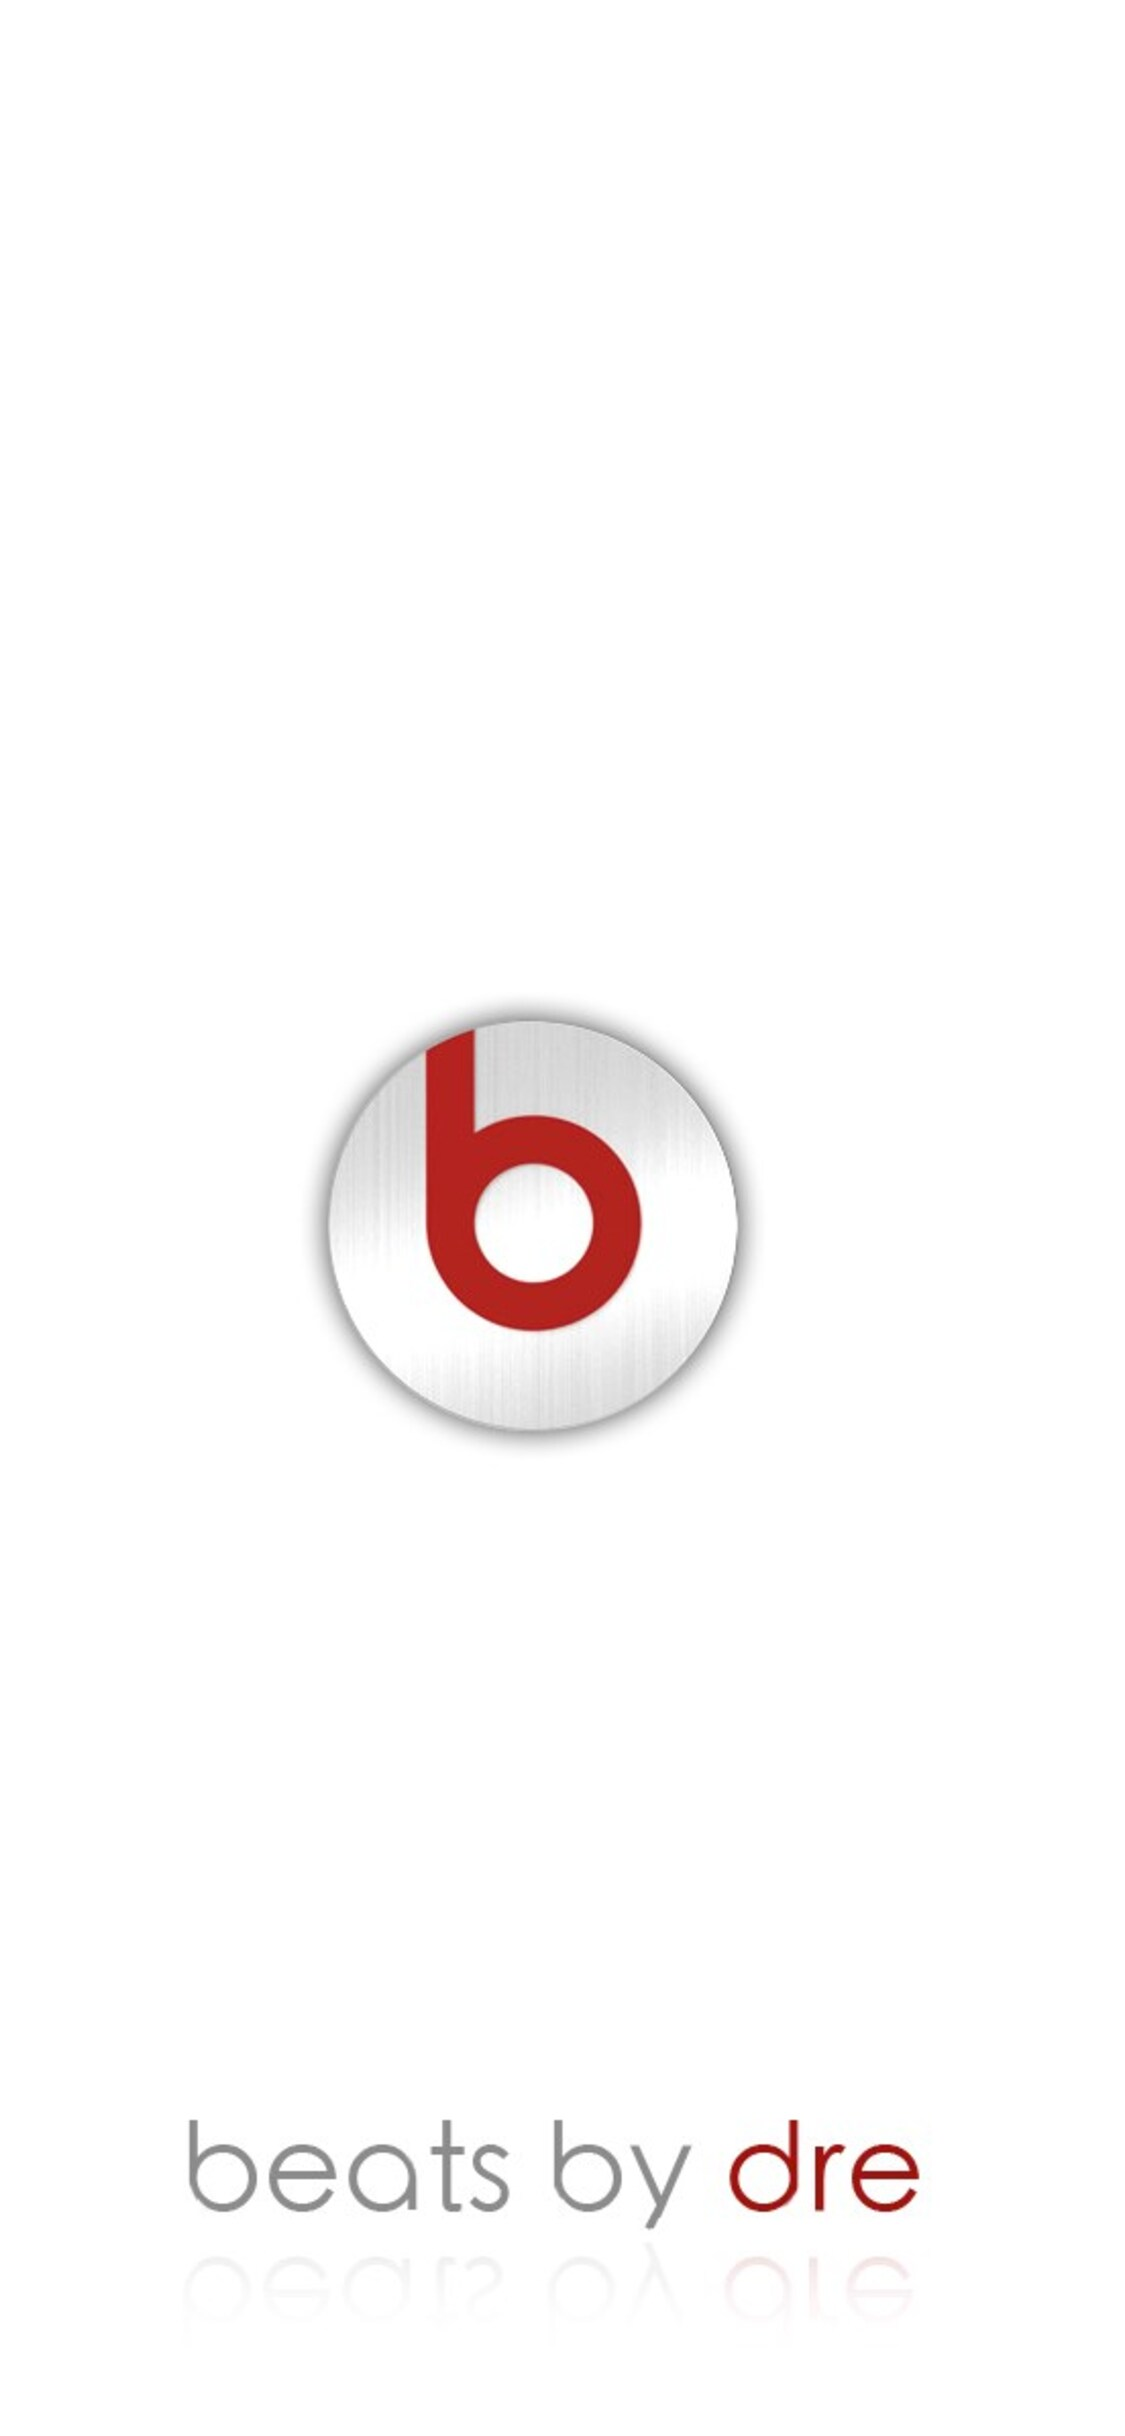 110aa7d30b8 1125x2436 BEATS BY DRE Iphone XS,Iphone 10,Iphone X HD 4k Wallpapers ...